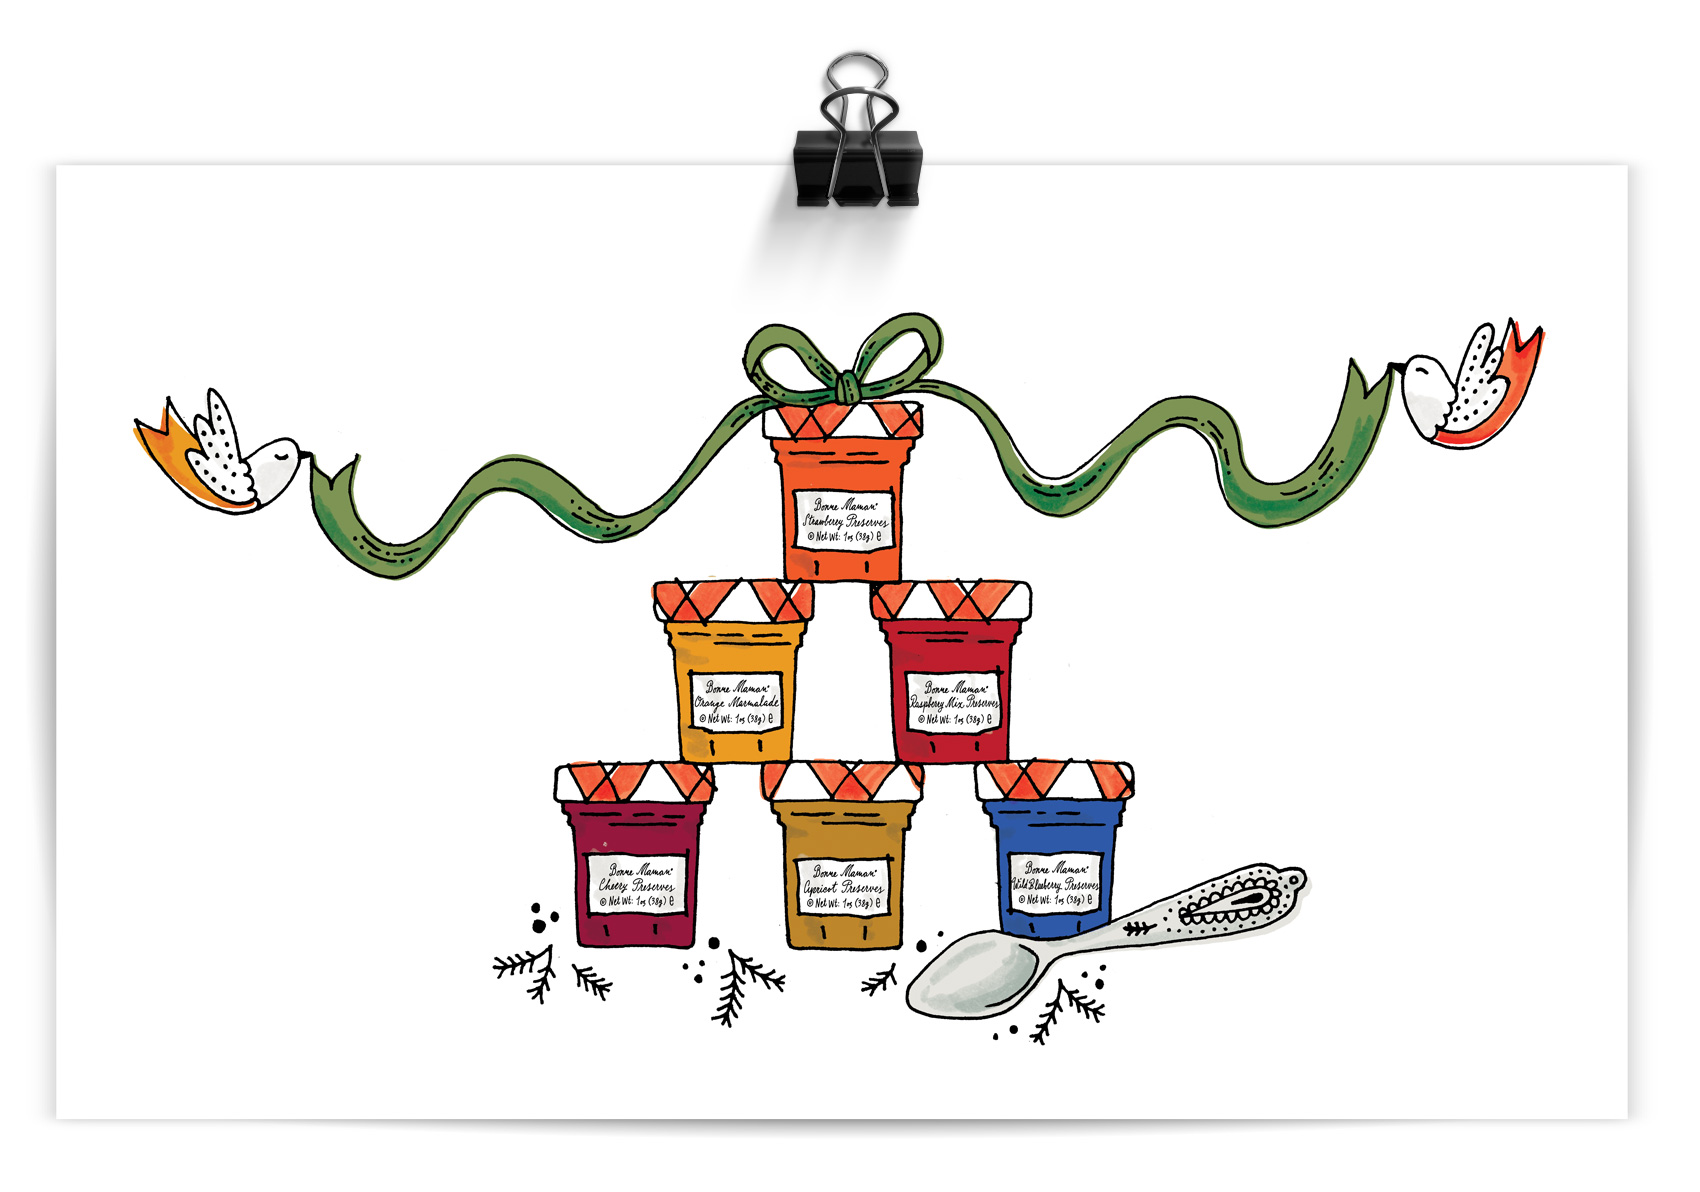 A very Cinderella inspired stack of french preserves from Bonne Maman.